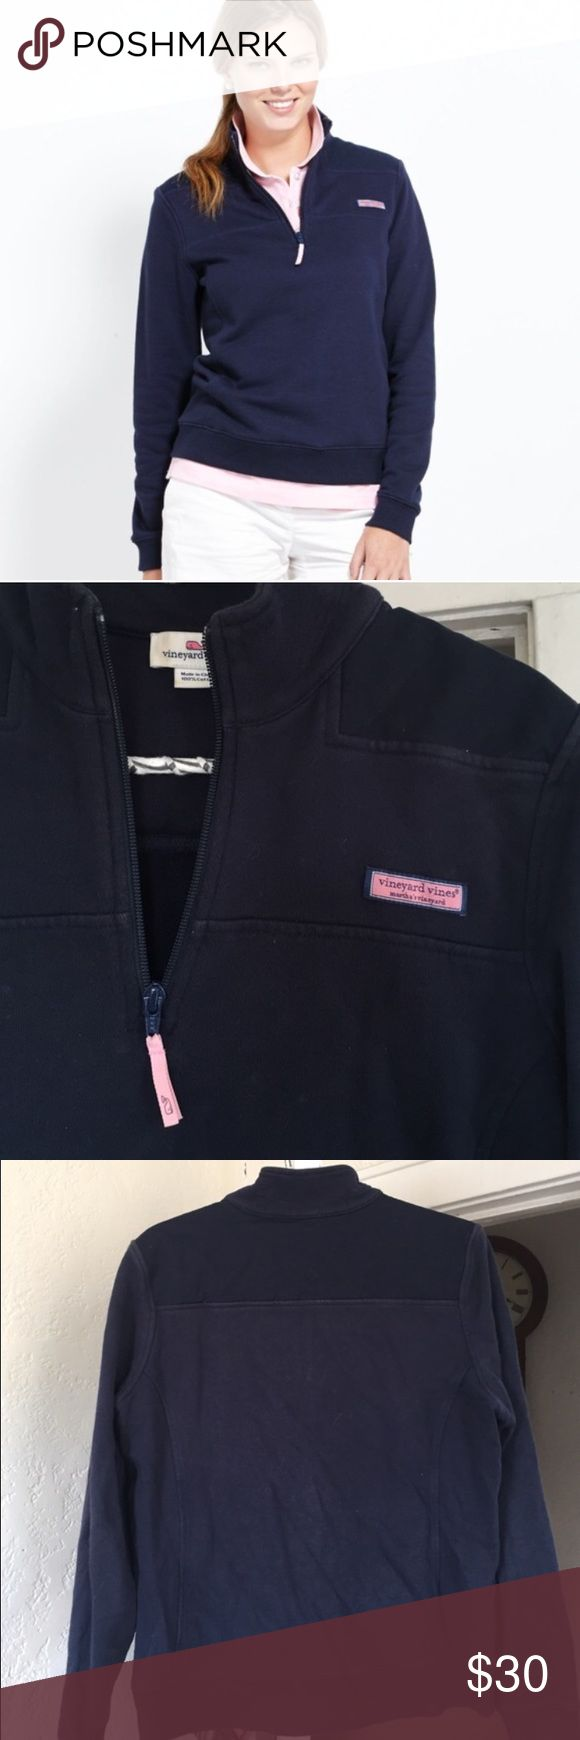 Vineyard Vines Shep zip up M navy nautical Size M Shep Vineyard Bines zip up. Classic piece. Older, but VV still sells this style. Some light fading, but overall very good condition. Size medium. Vineyard Vines Tops Sweatshirts & Hoodies